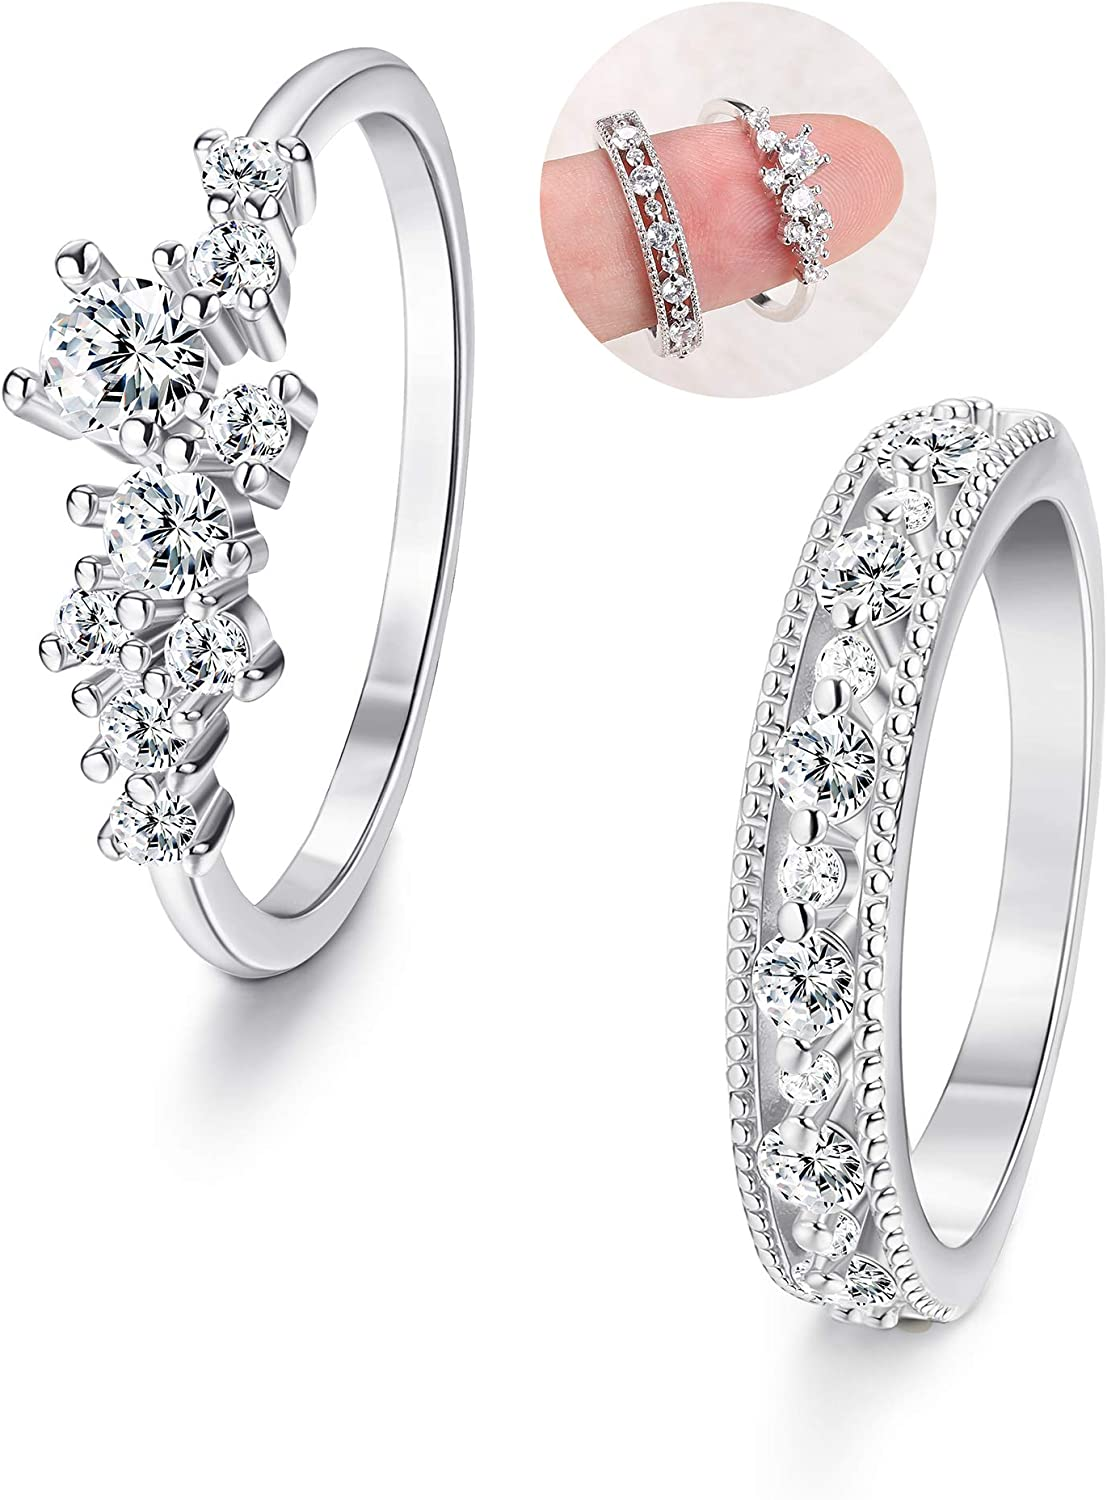 Silver and Cubic Zirconia Stackable Ring